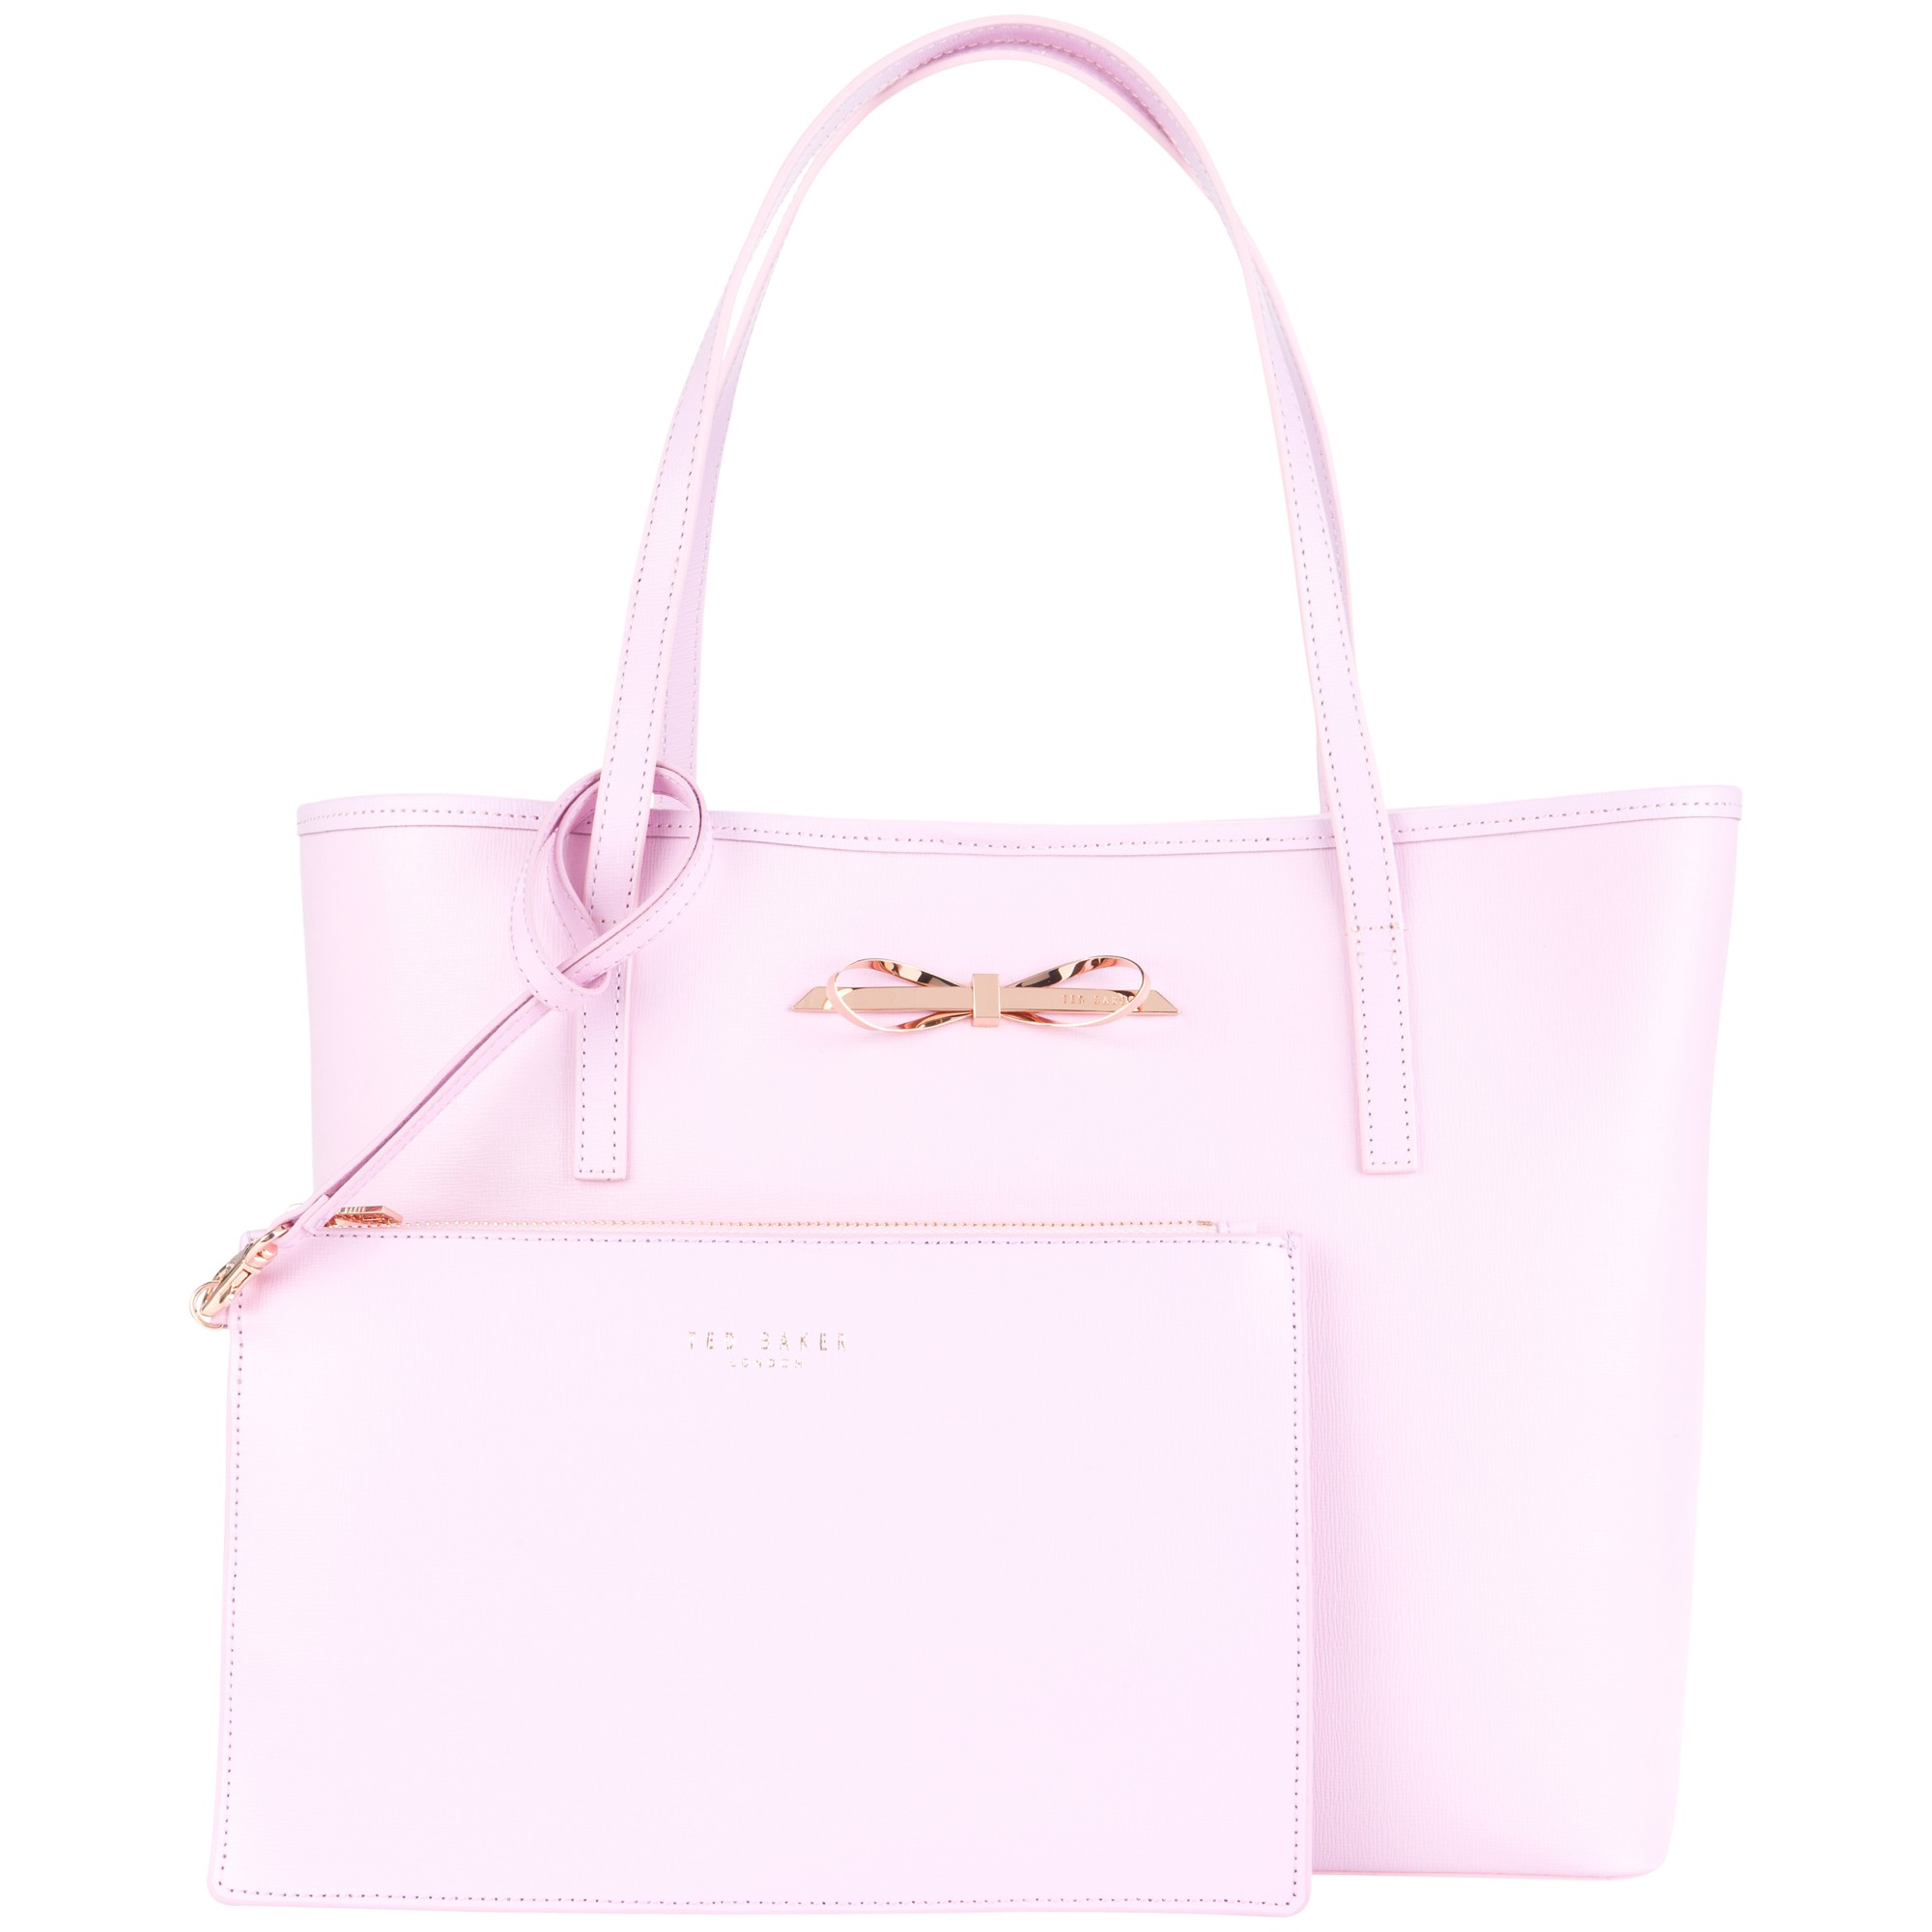 6b3ab3627ed2 Ted Baker Isabow Crosshatch Leather Bow Shopper Bag in Pink - Lyst